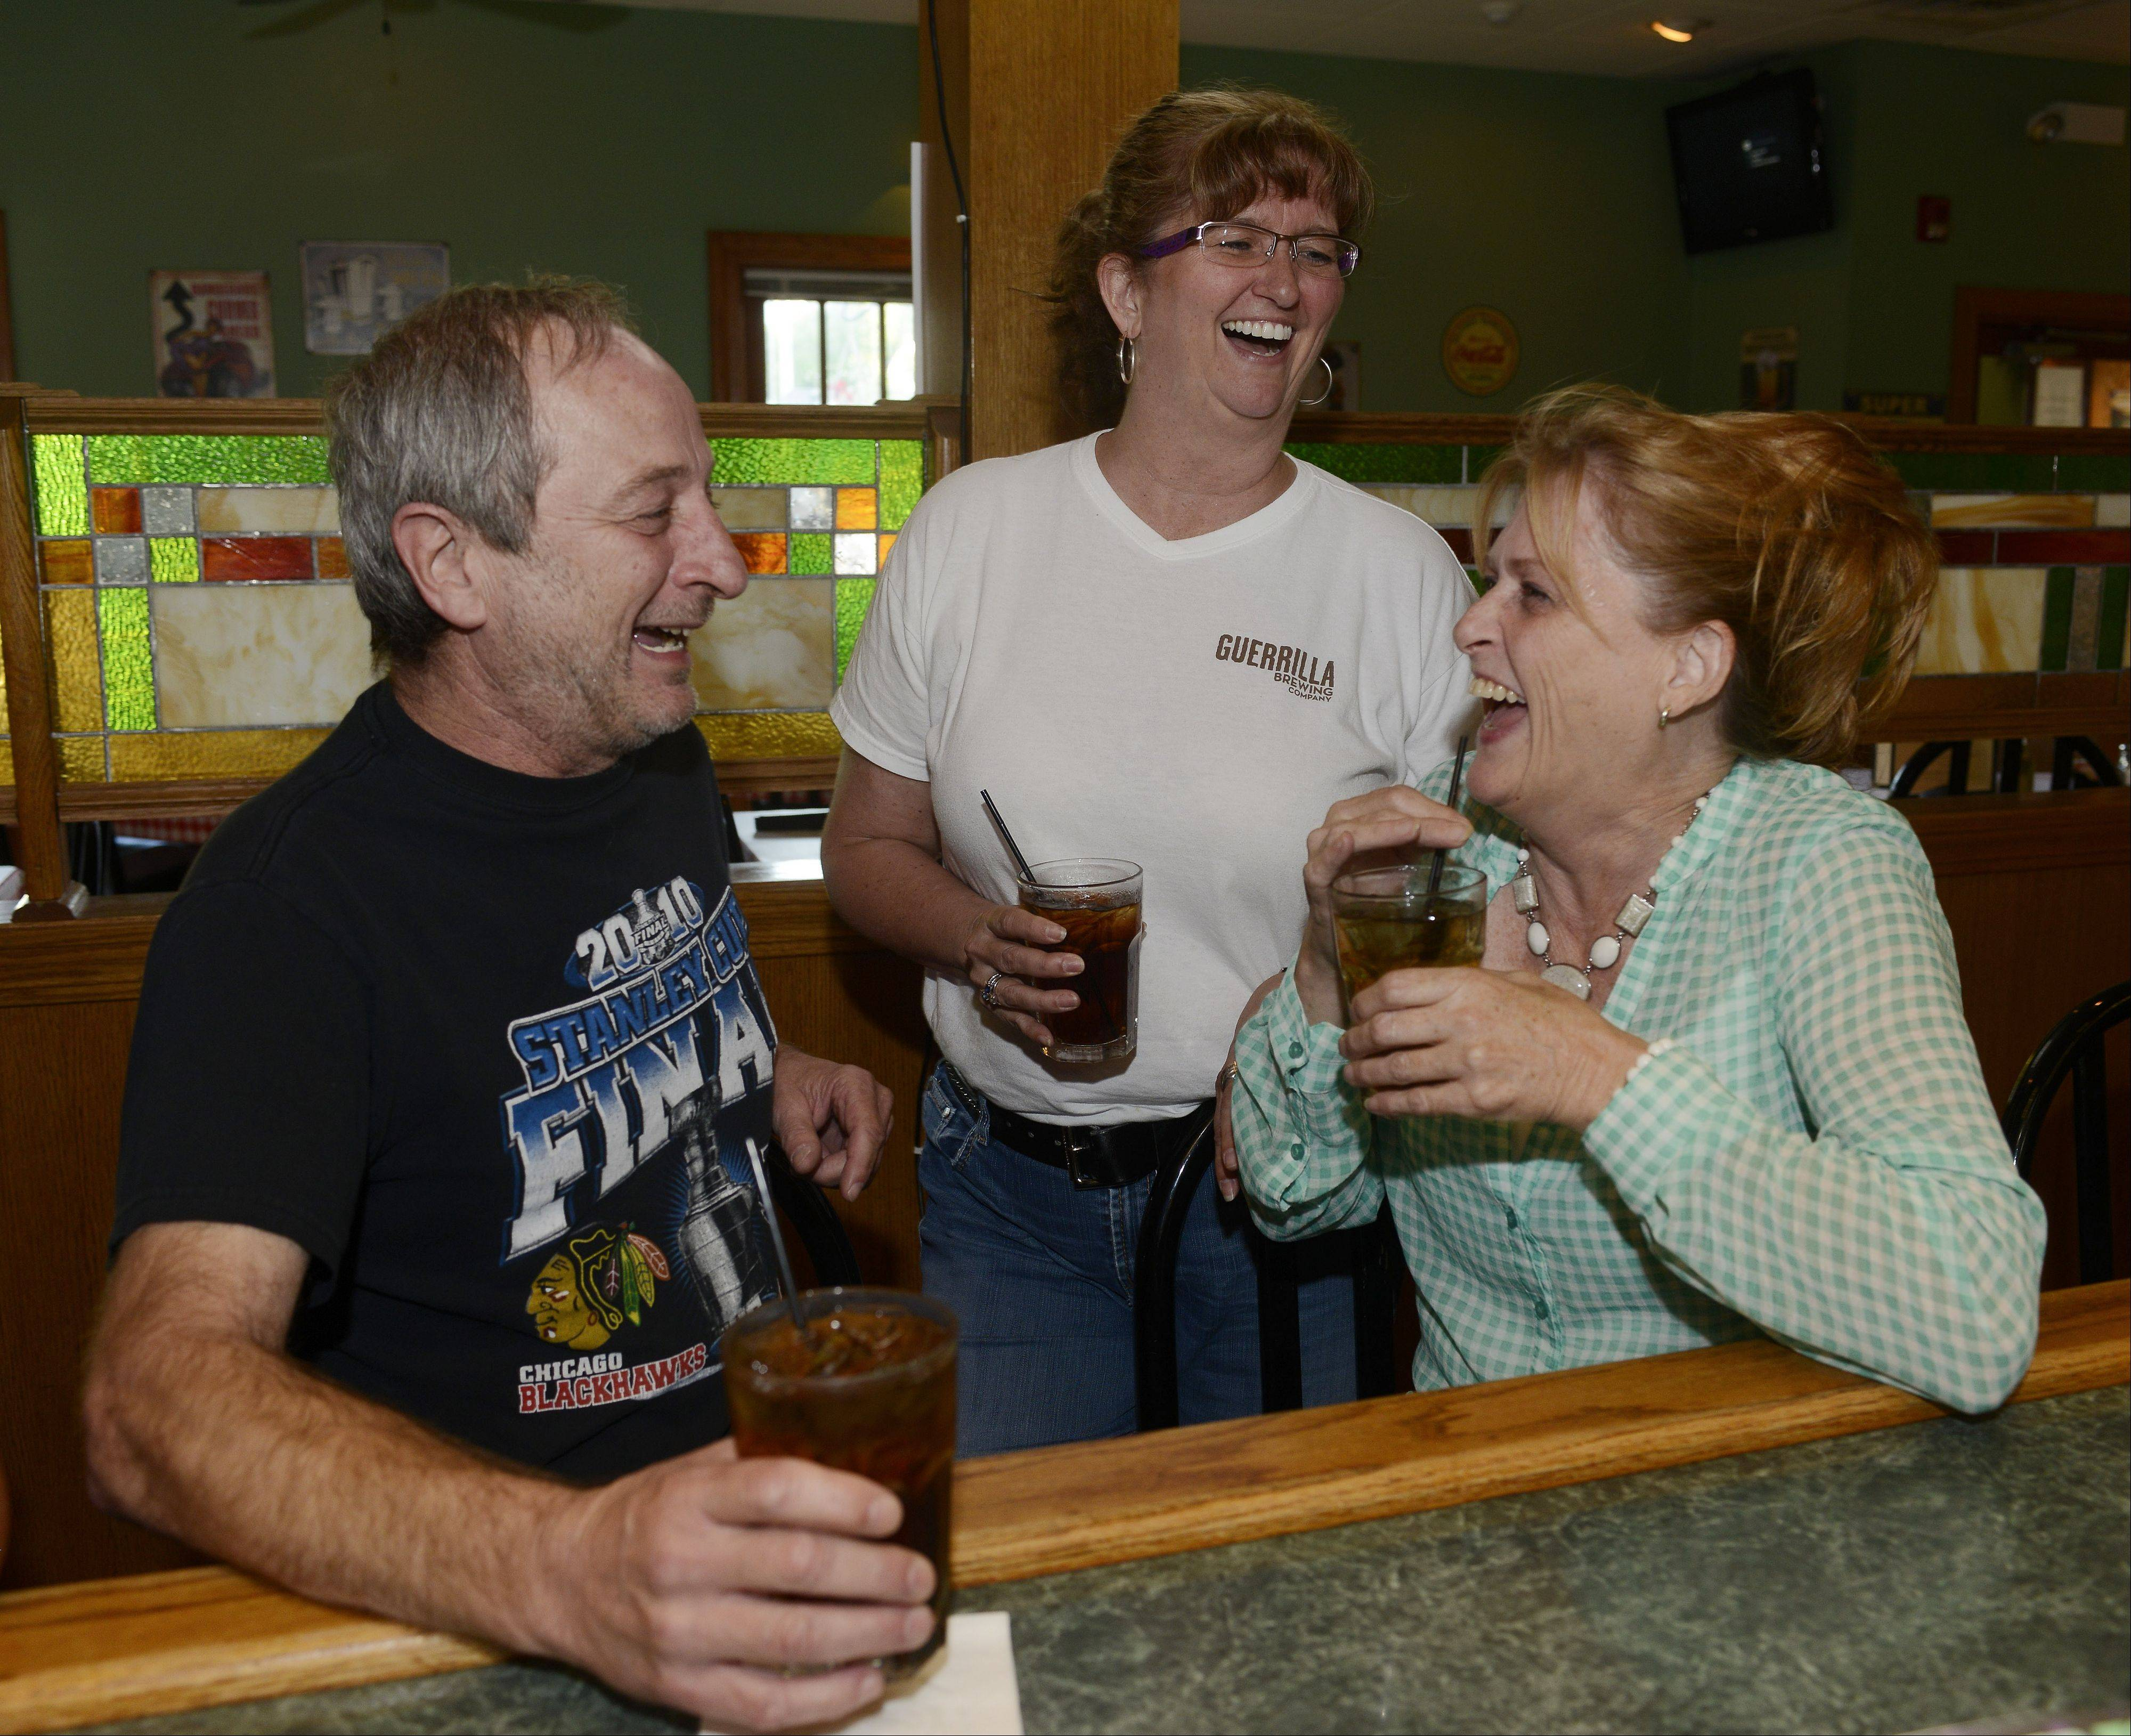 Dave Brandt, left, Kelly Russell and Tammy Beltran, all of Mundelein, enjoy themselves at Gugg's Roadhouse in Vernon Hills.